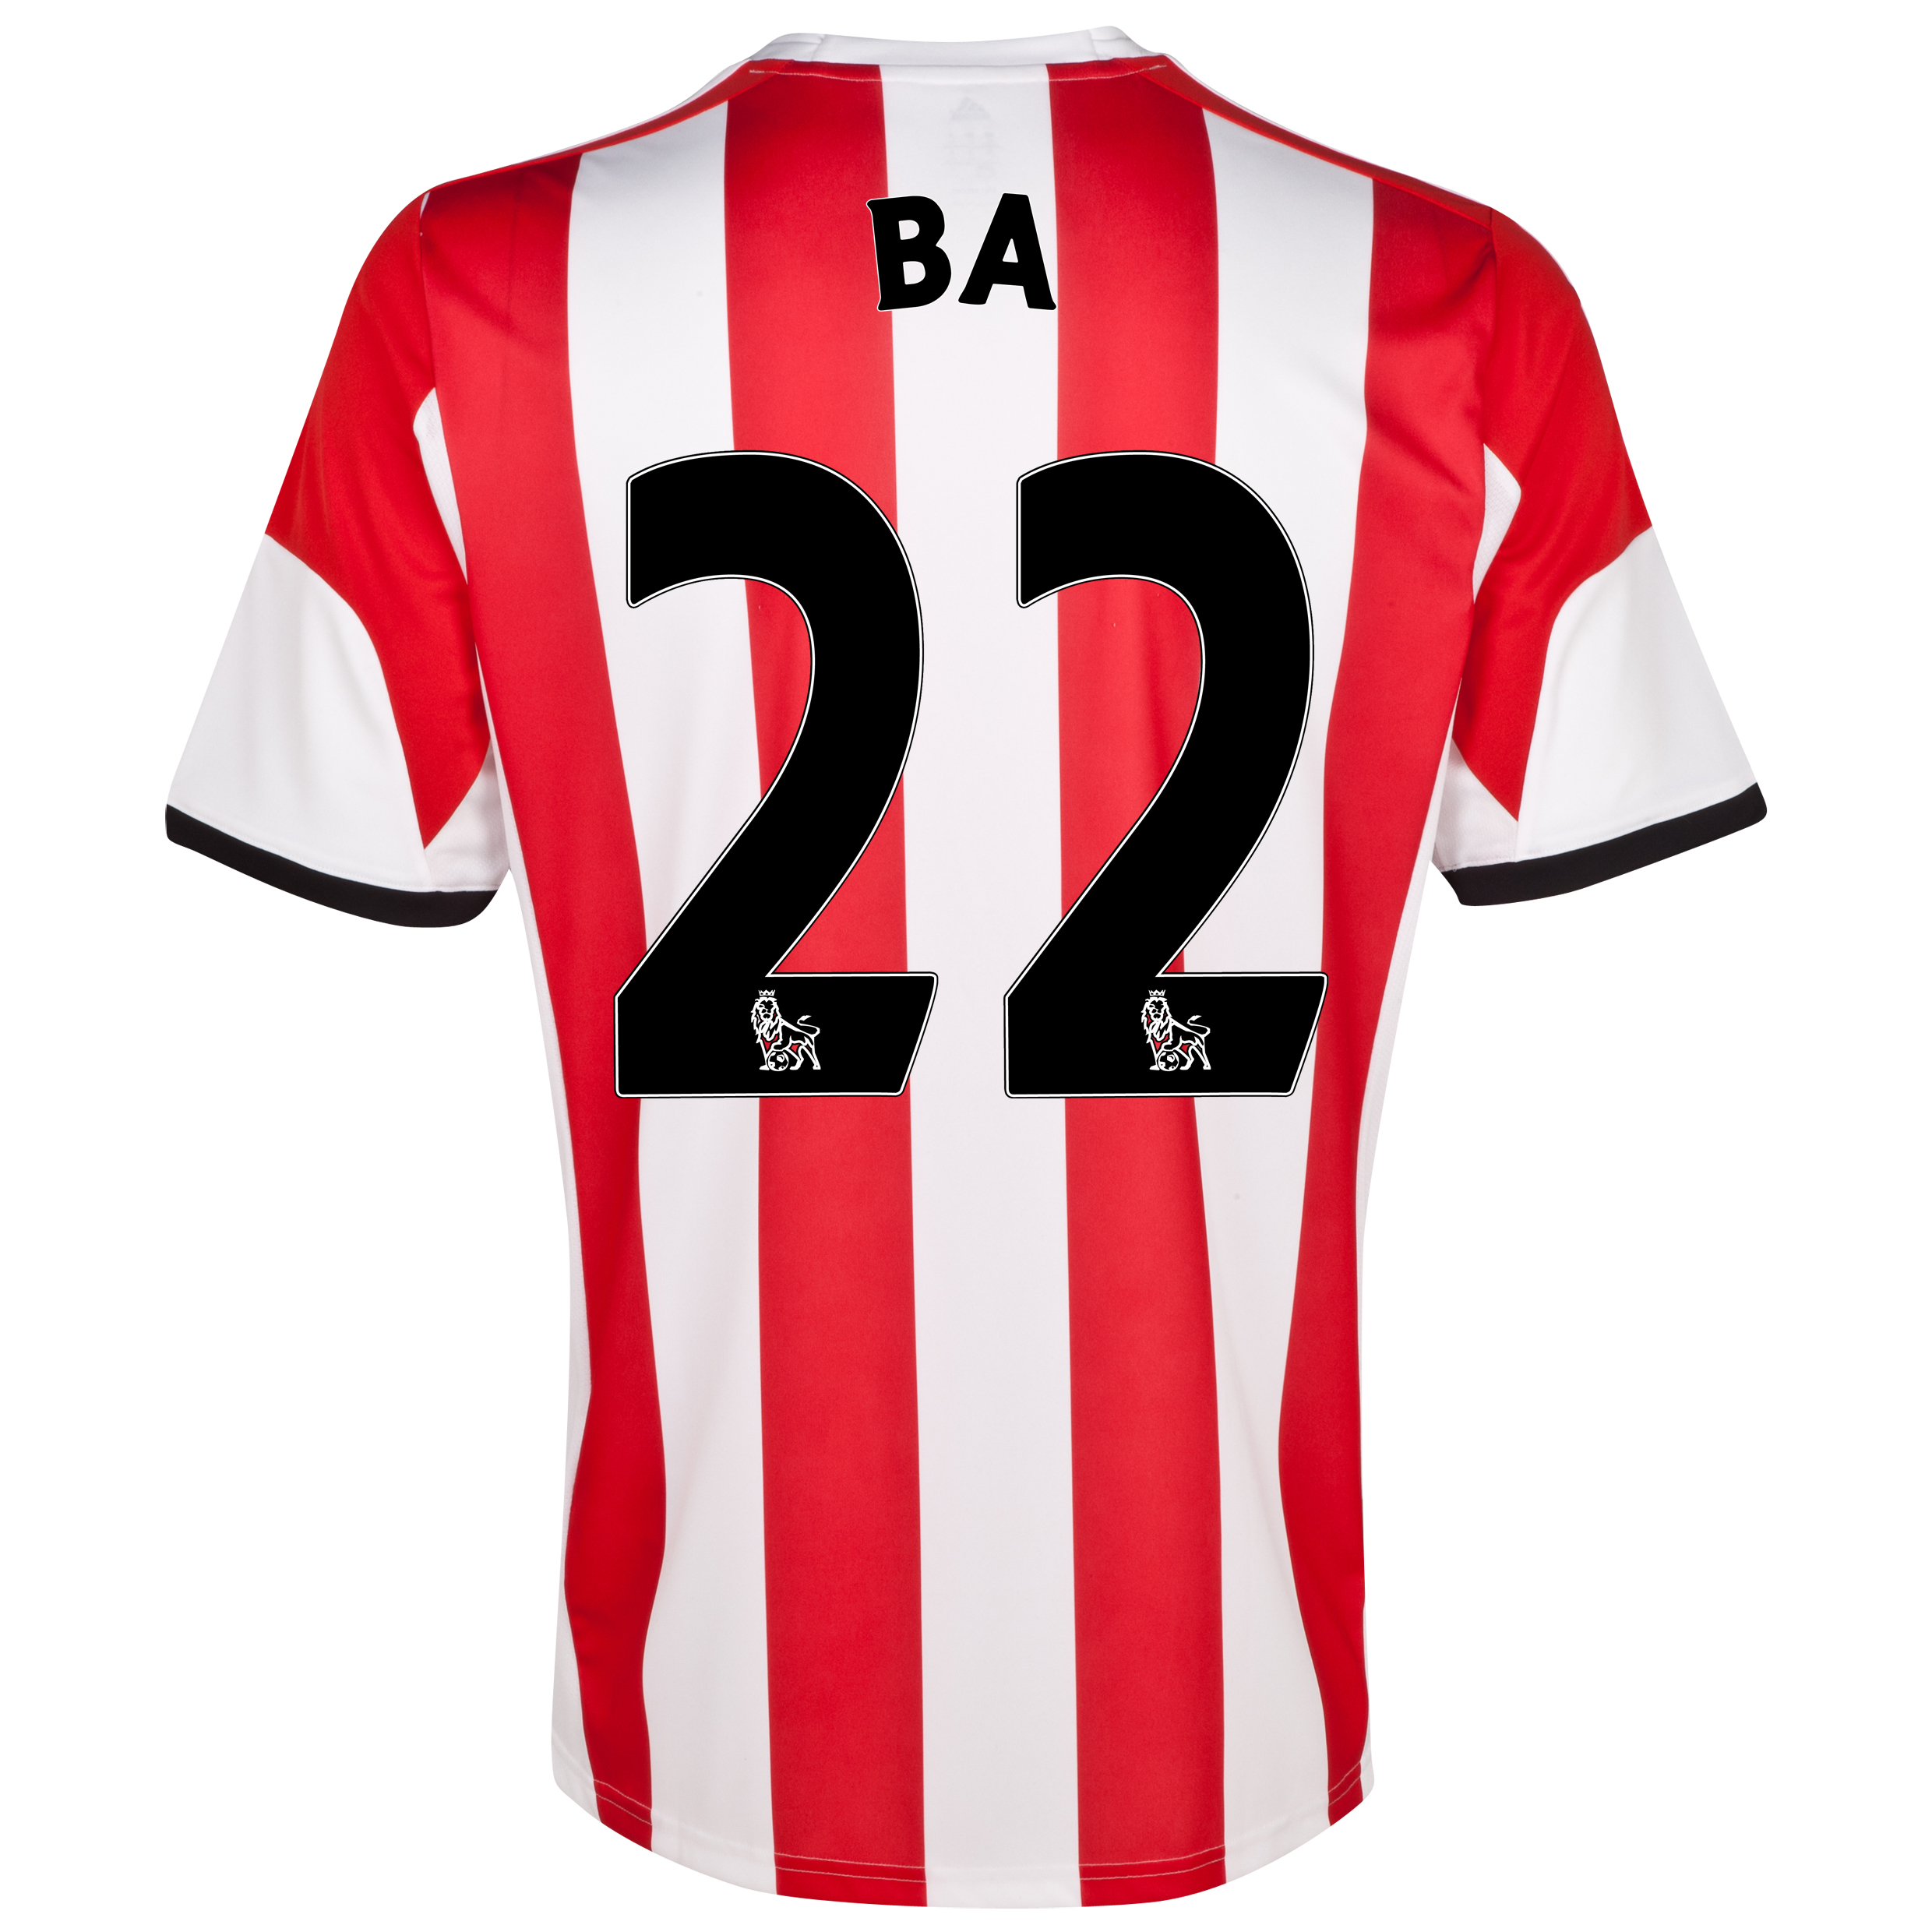 Sunderland Home Shirt 2013/14 - Junior with Ba 22 printing